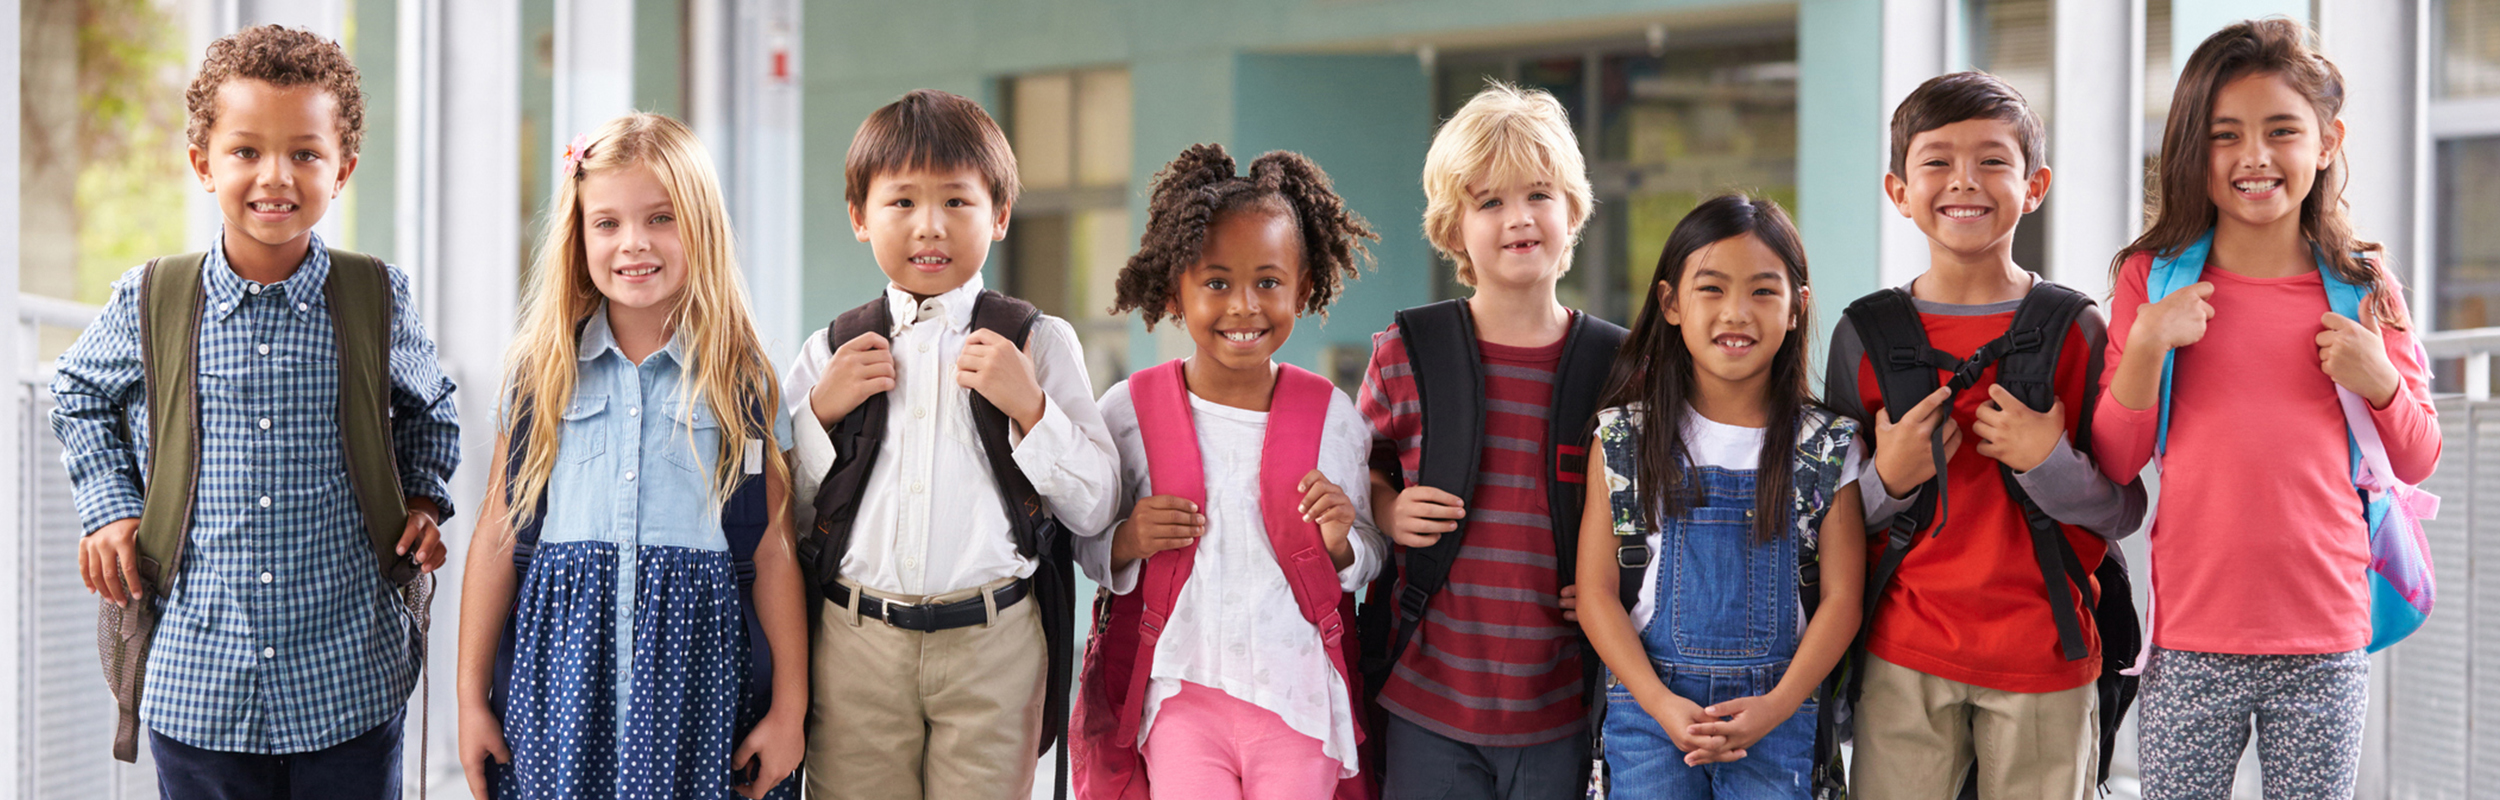 Students standing with backpacks on